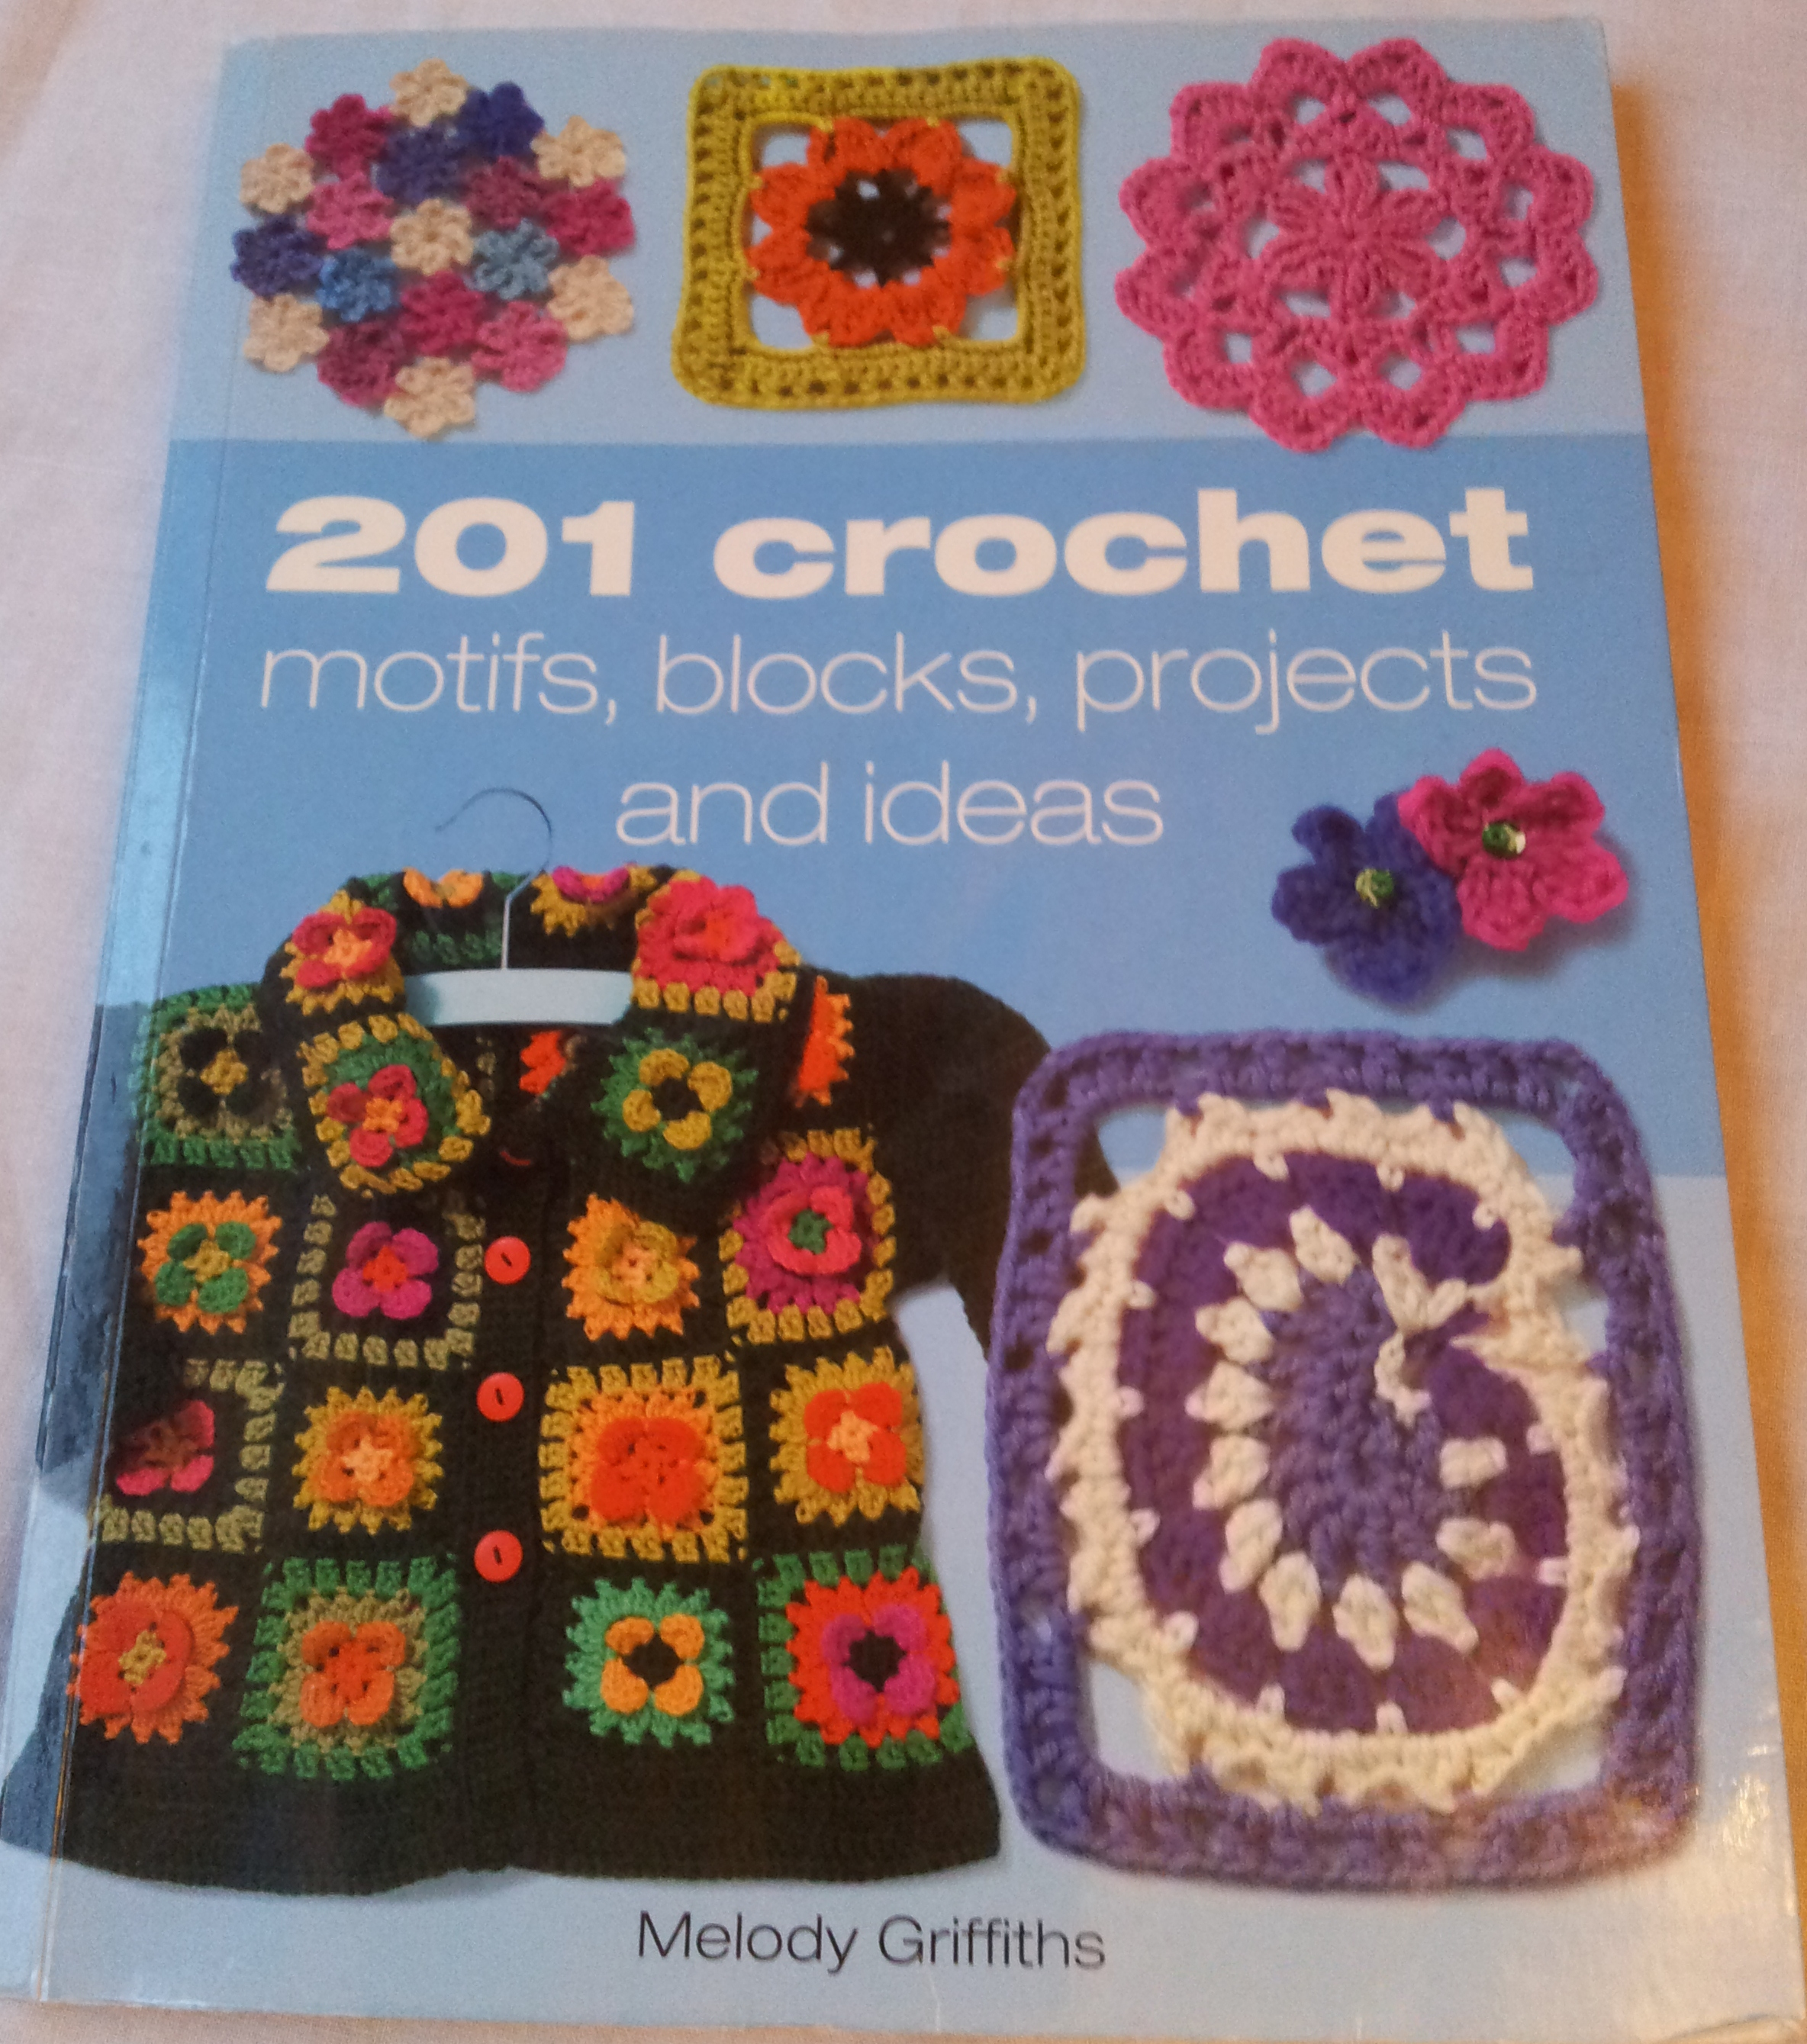 quick crochet projects Explore sherry russell's board quick crochet projects on pinterest | see more ideas about crochet patterns, crocheting patterns and knit crochet.